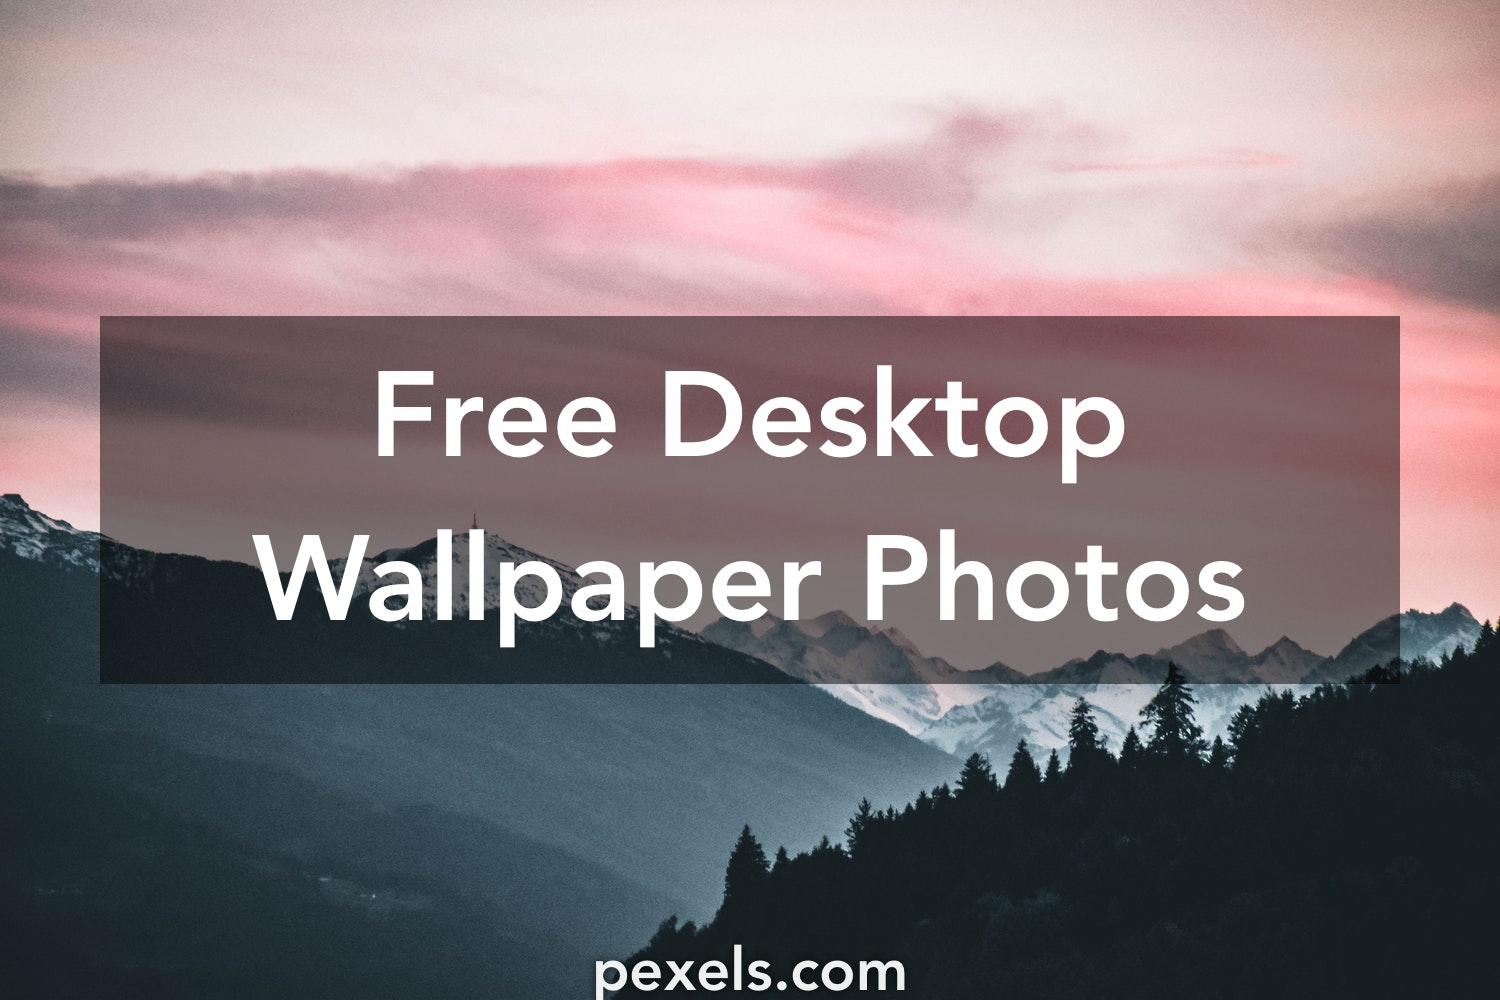 Desktop Wallpaper Pexels Free Stock Photos